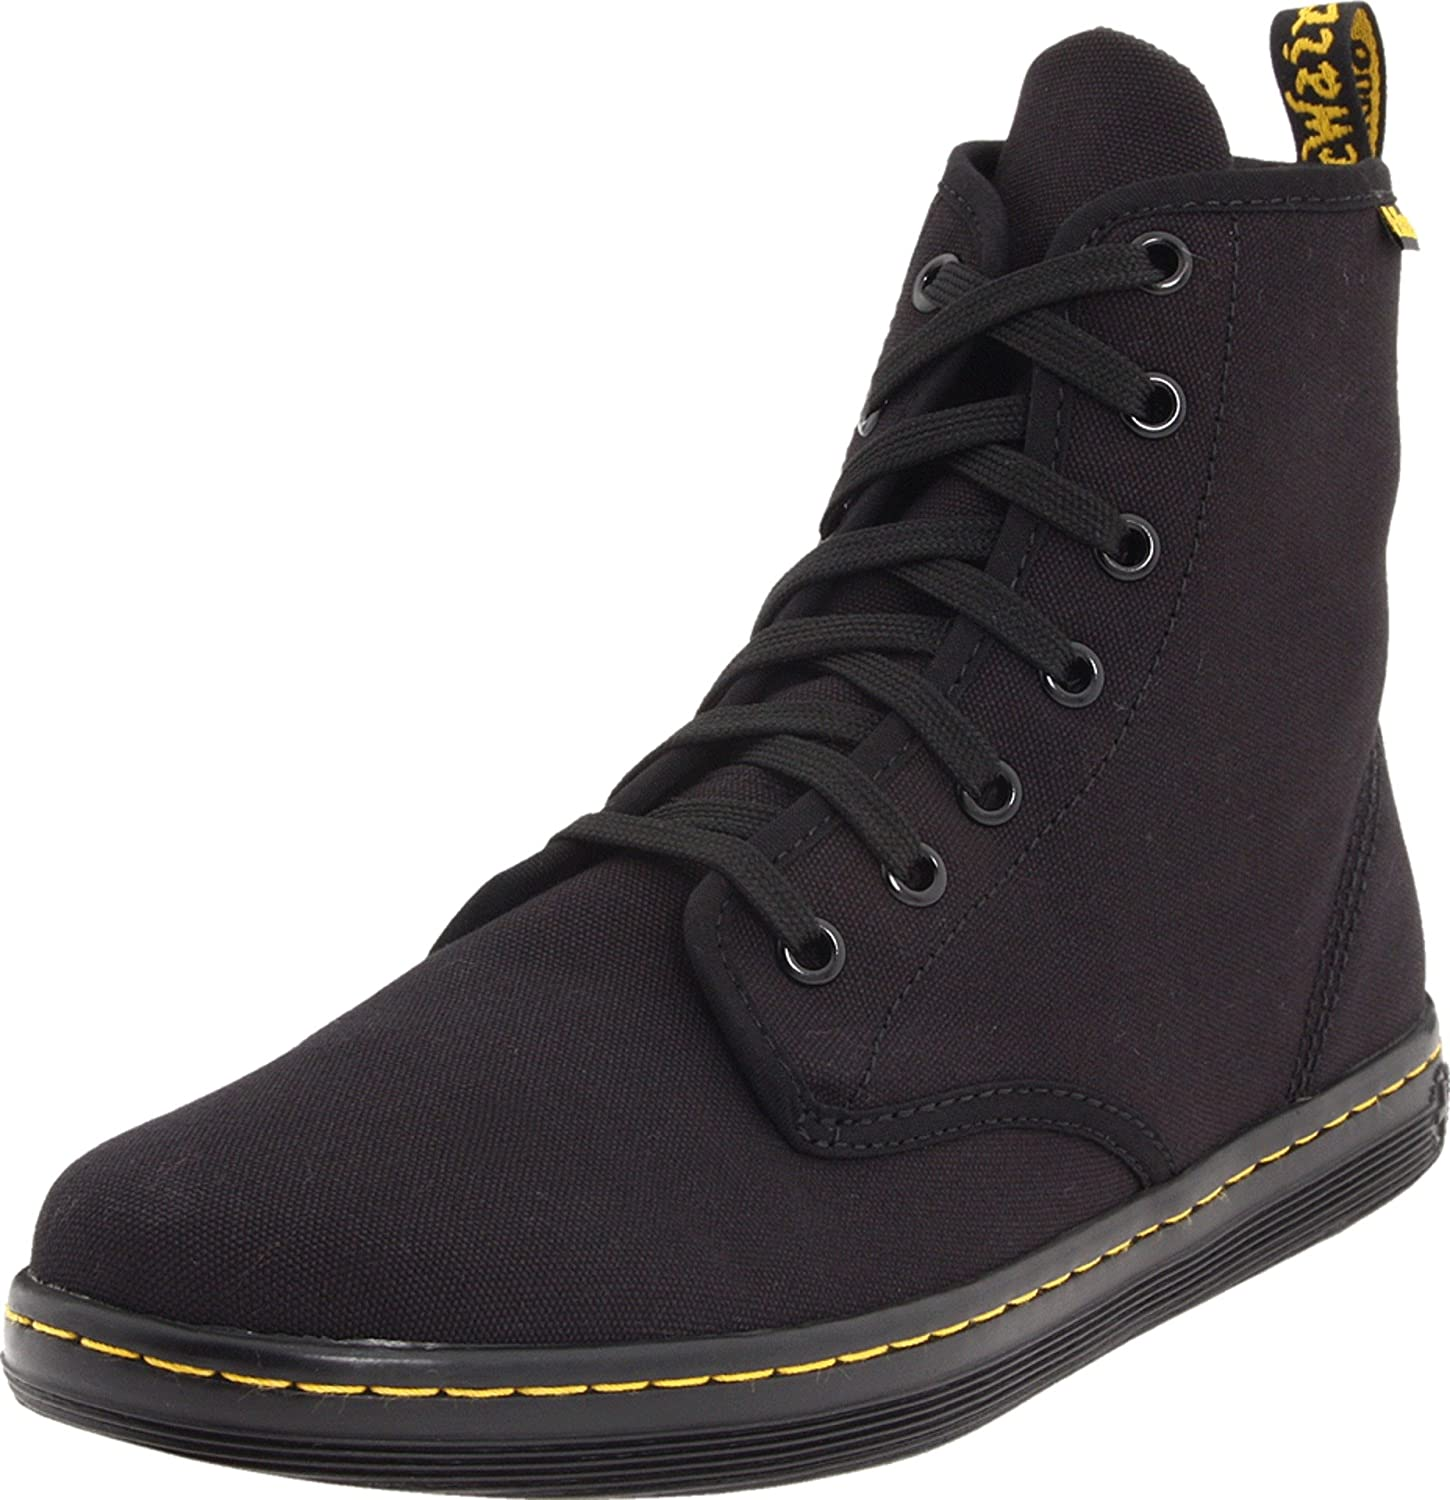 Dr. Martens Women's Shoreditch-R13524002 Ankle Bootie B004G604QY 9 UK (US Women's 11 M)|Black